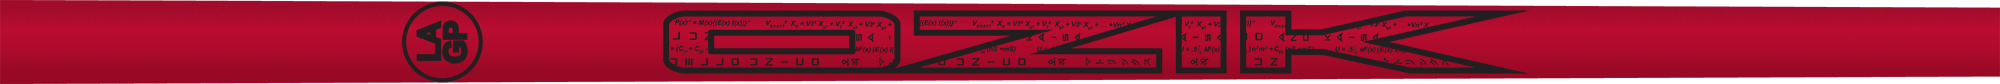 Ozik White Tie: Candy Apple Red Black Matte - Wood 50 S